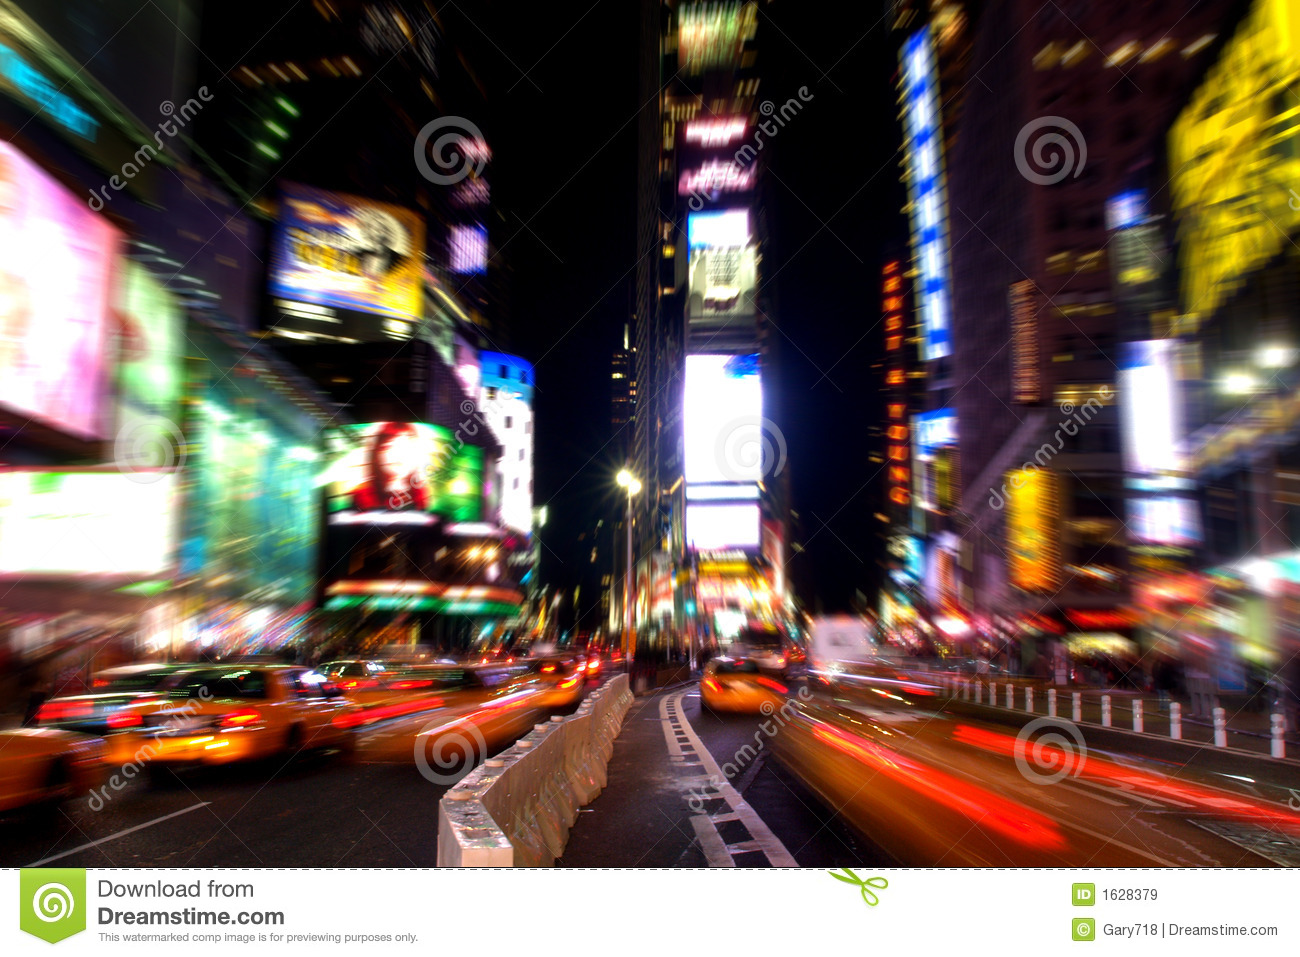 Times square at night #3